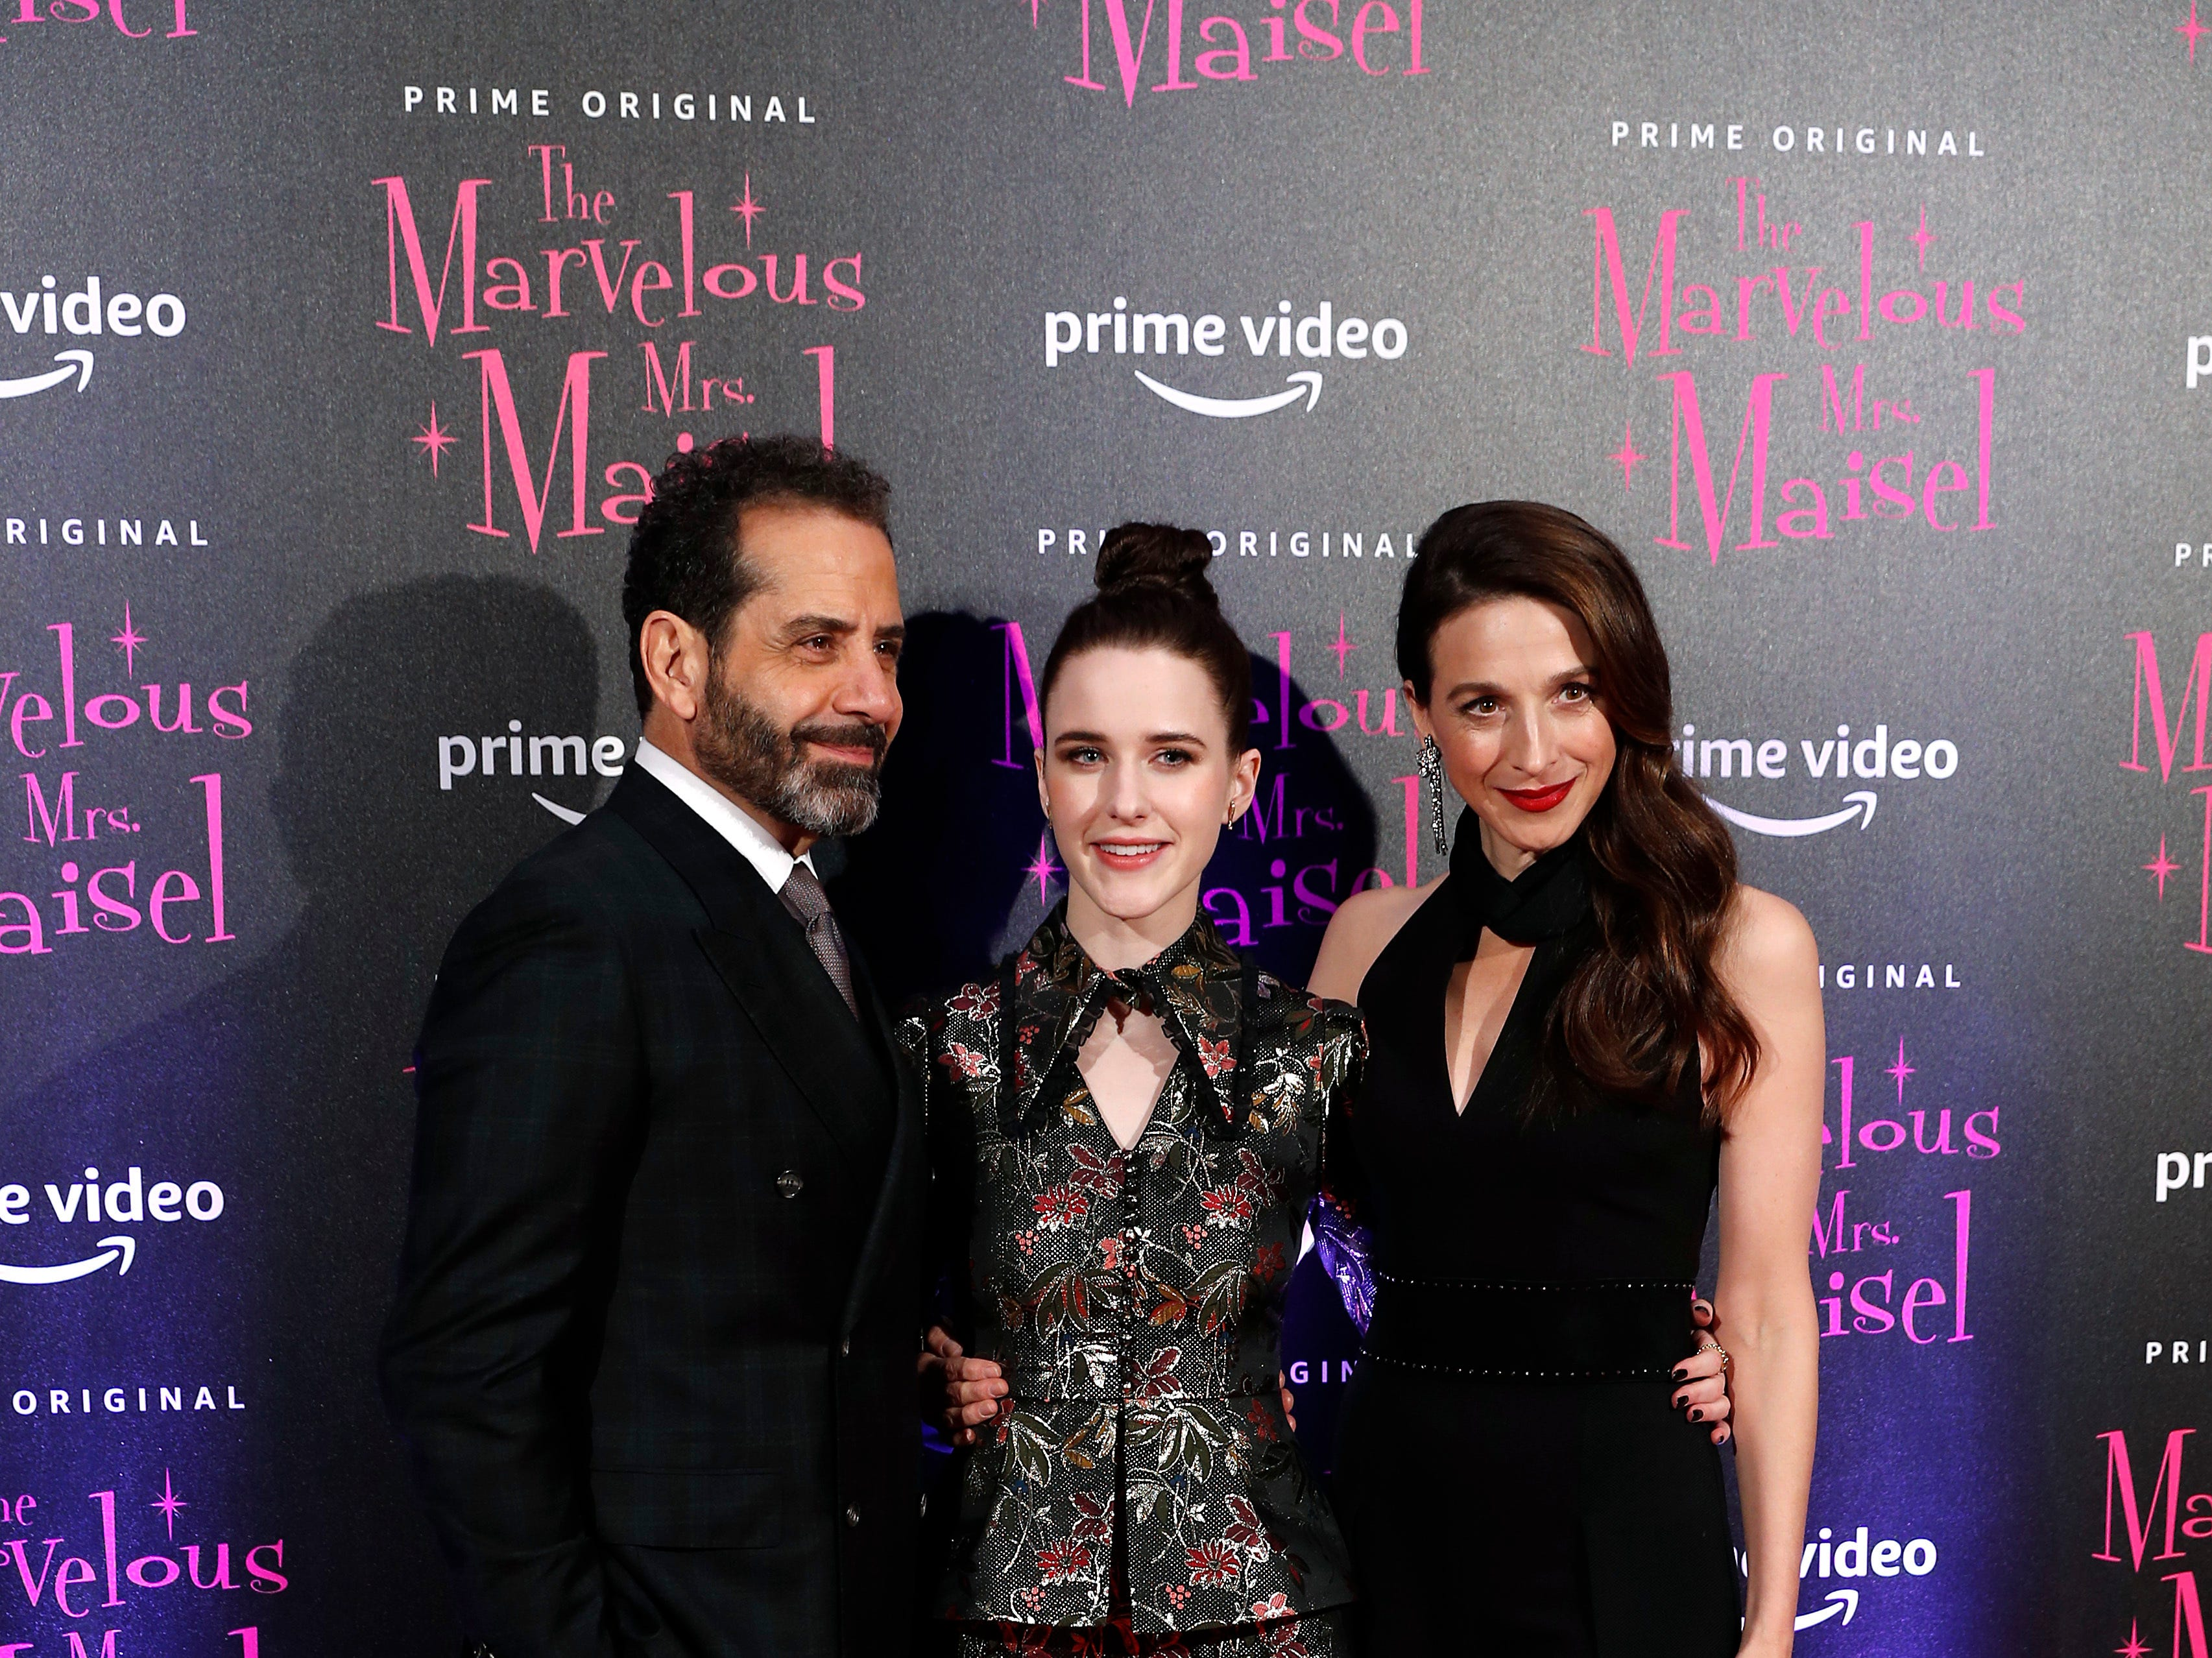 """Actress Rachel Brosnahan, center, poses for photographers with Marin Hinkle, right, and actor Tony Shalhoub at the European Premiere of """"The Marvelous Mrs. Maisel"""" season 2, in Milan, Italy, Monday, Dec. 3, 2018."""